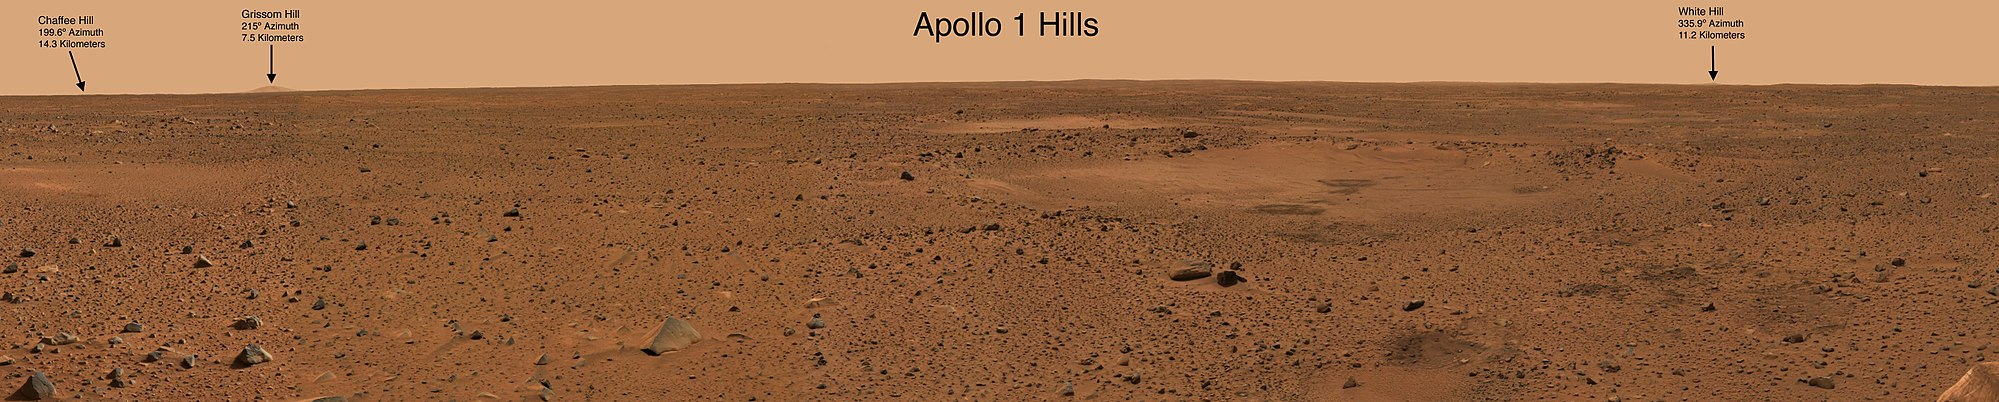 Main Apollo Hills.jpg